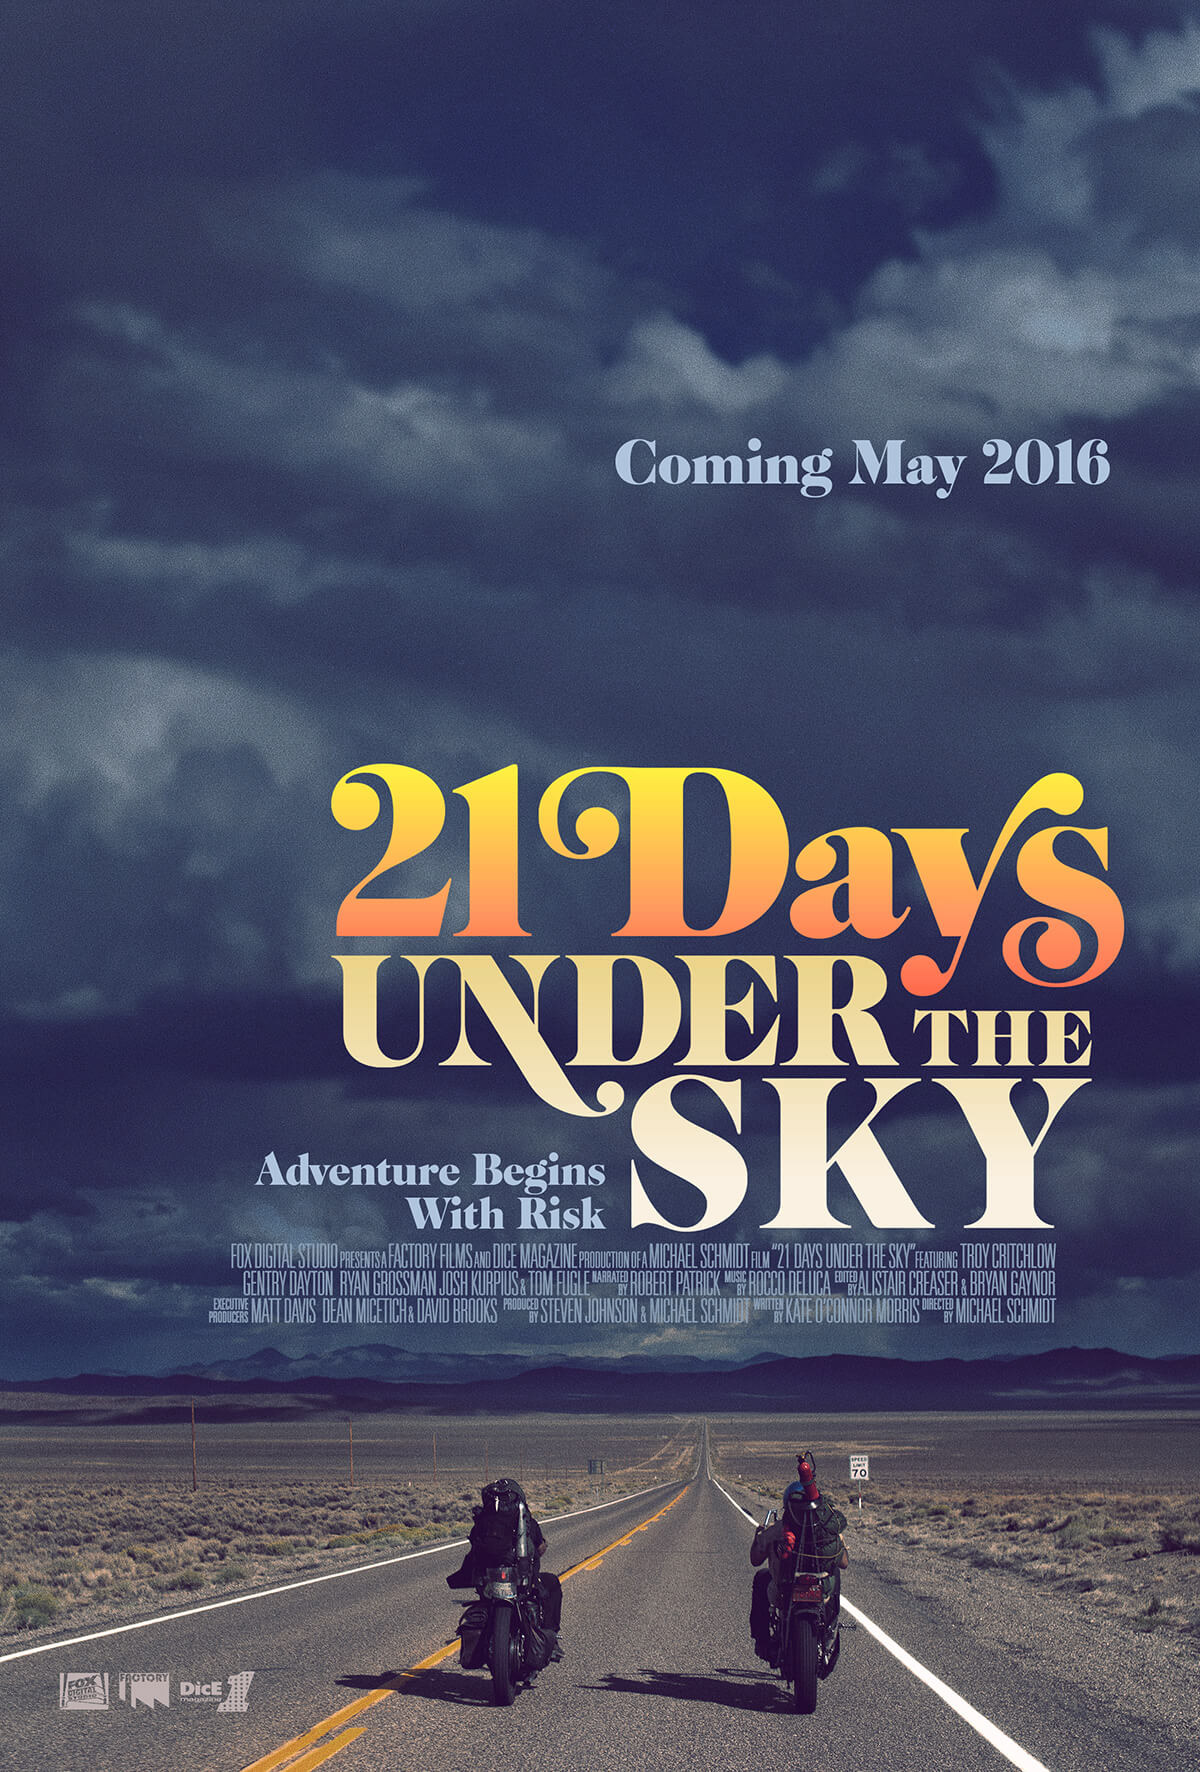 21 Days Under The Sky Movie Poster